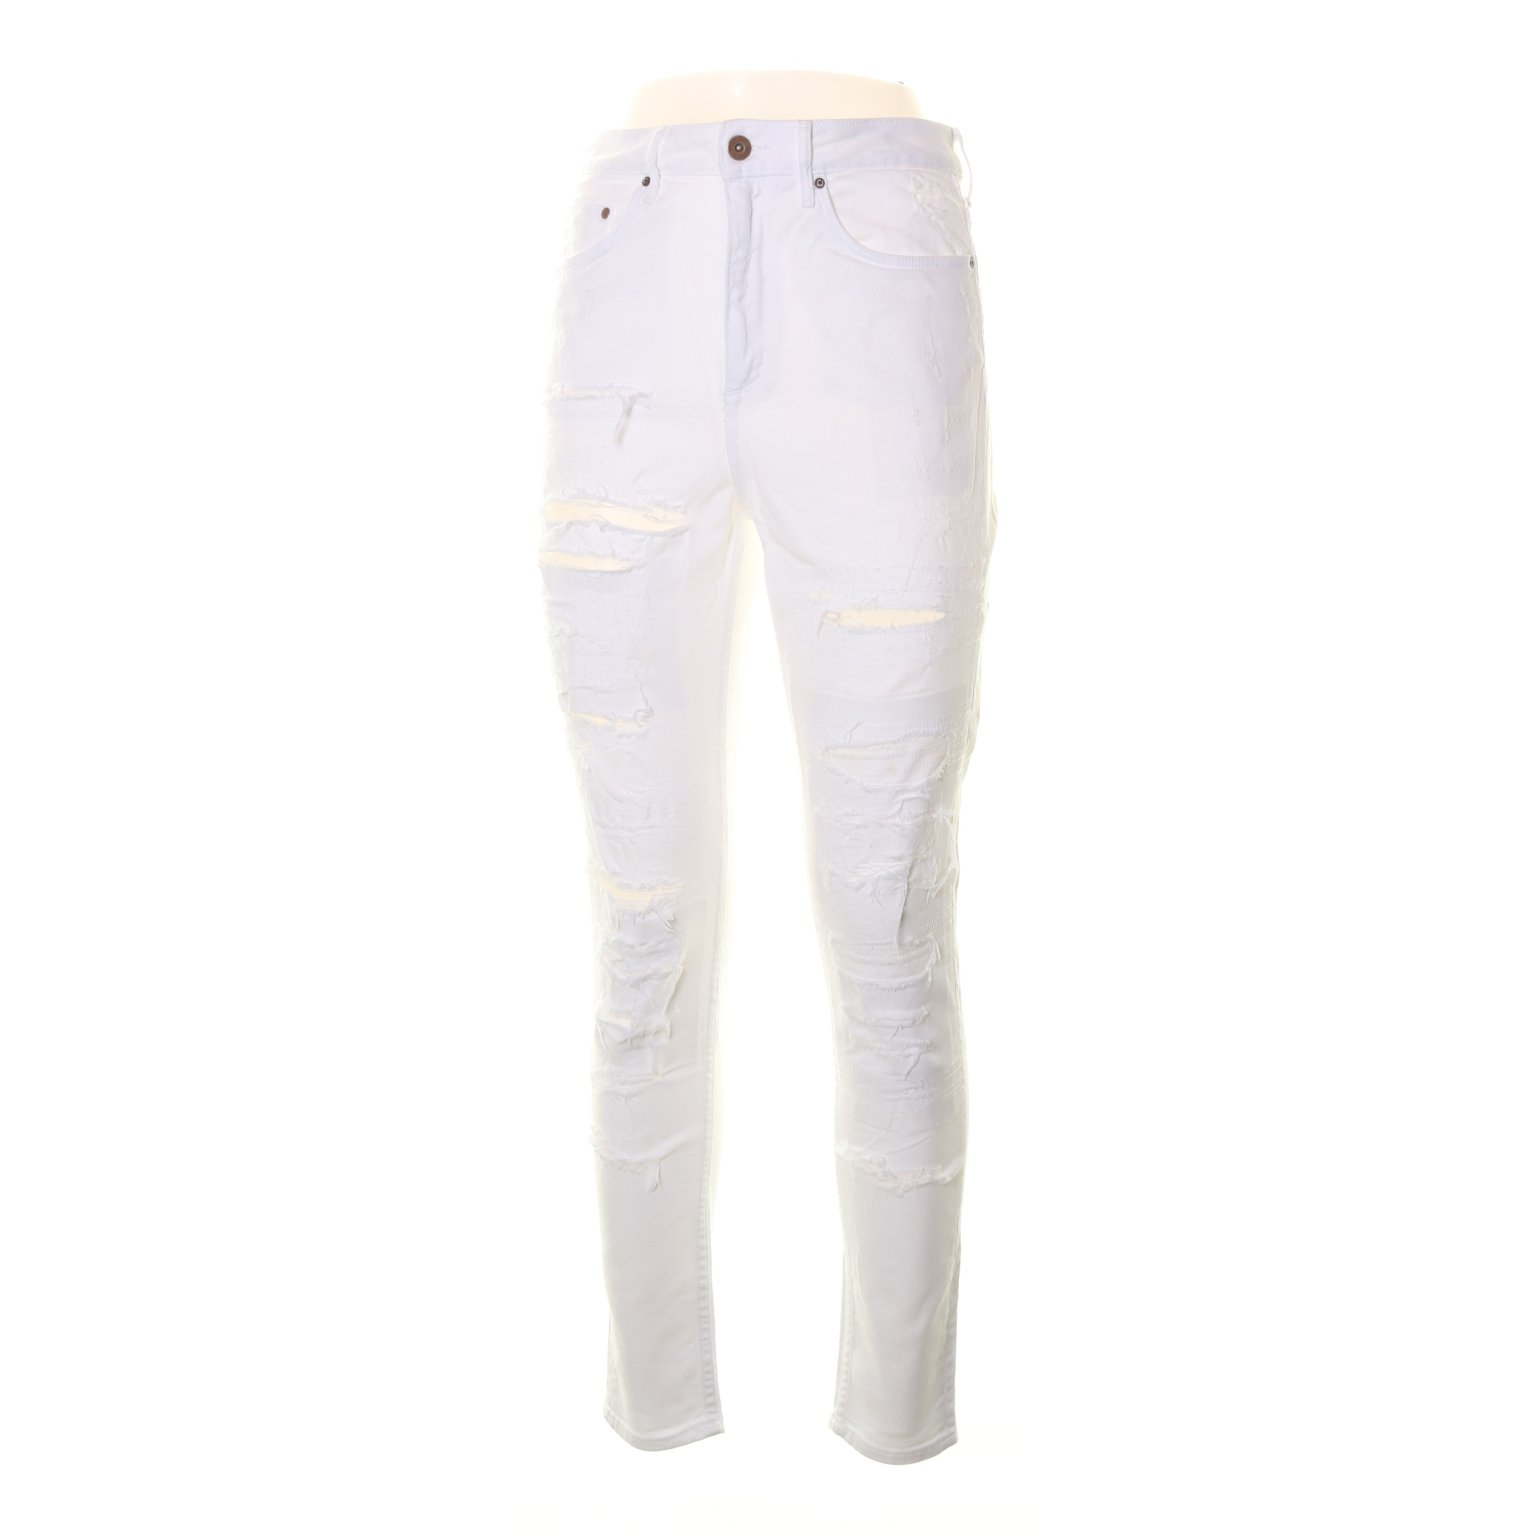 &Denim by H&M, Jeans, Strl: 28, Skinny High Waist, Vit